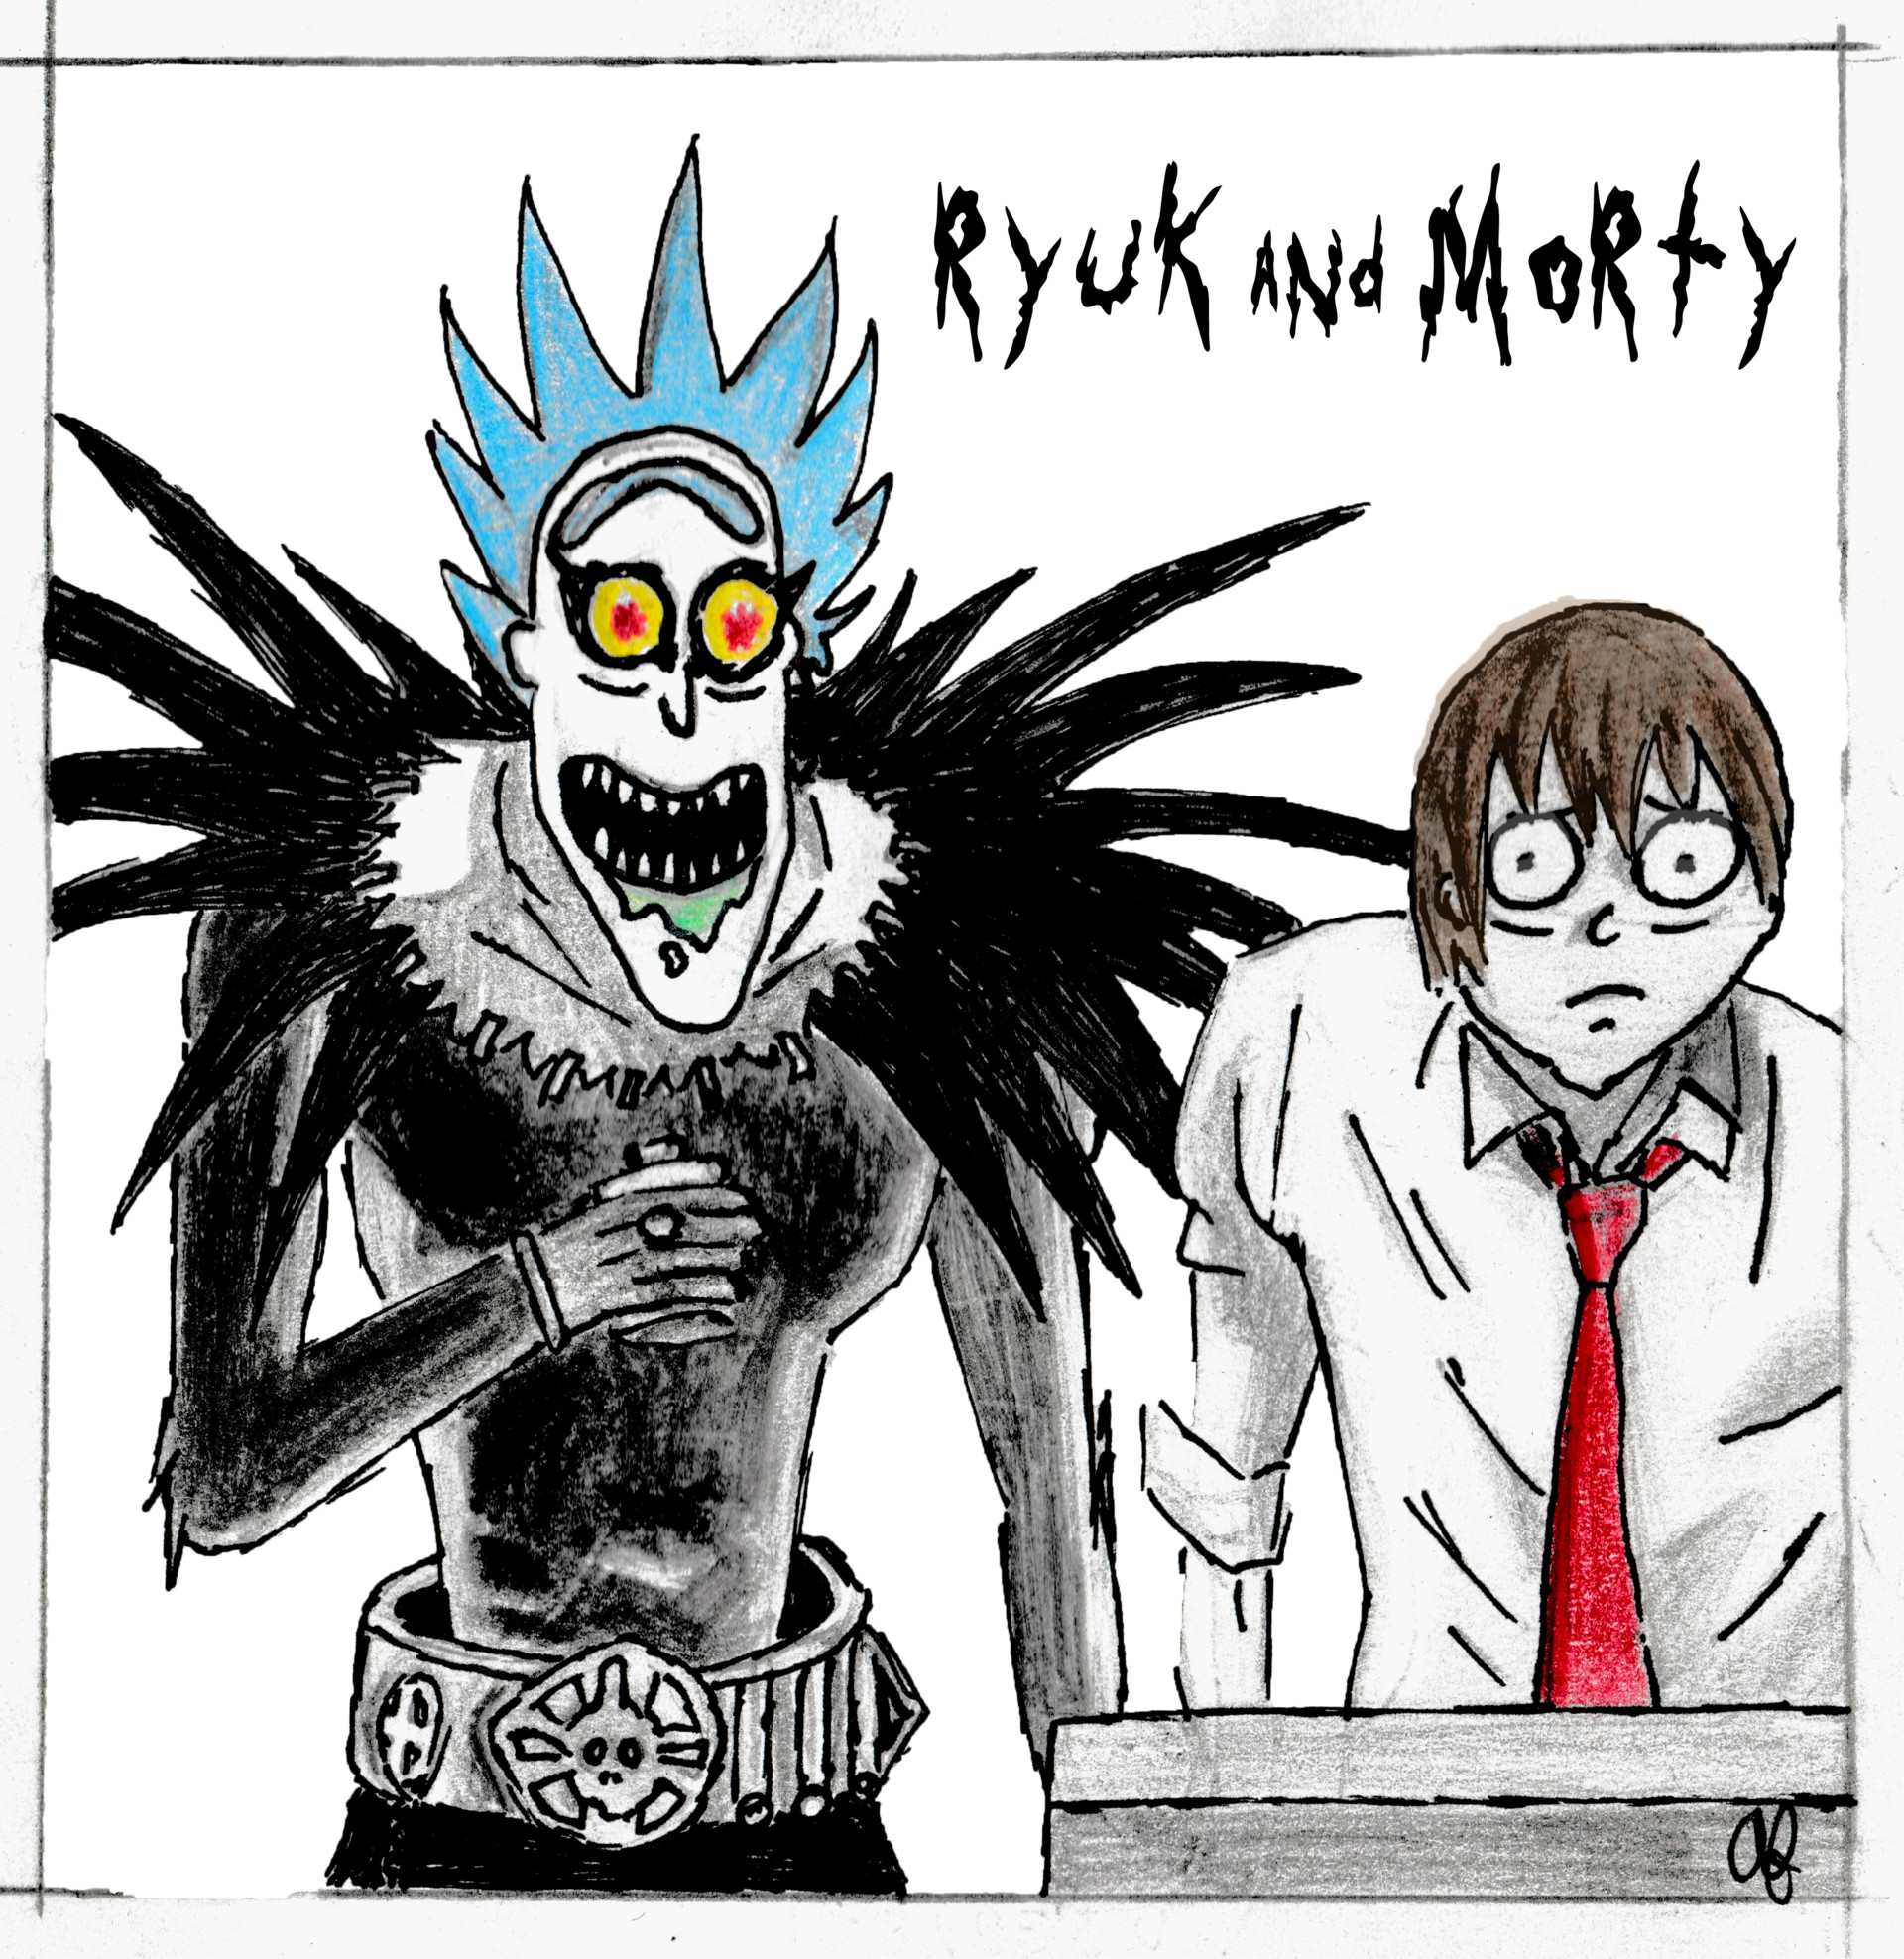 aaron-knight-ryuk-and-morty-finish Rick And Morty